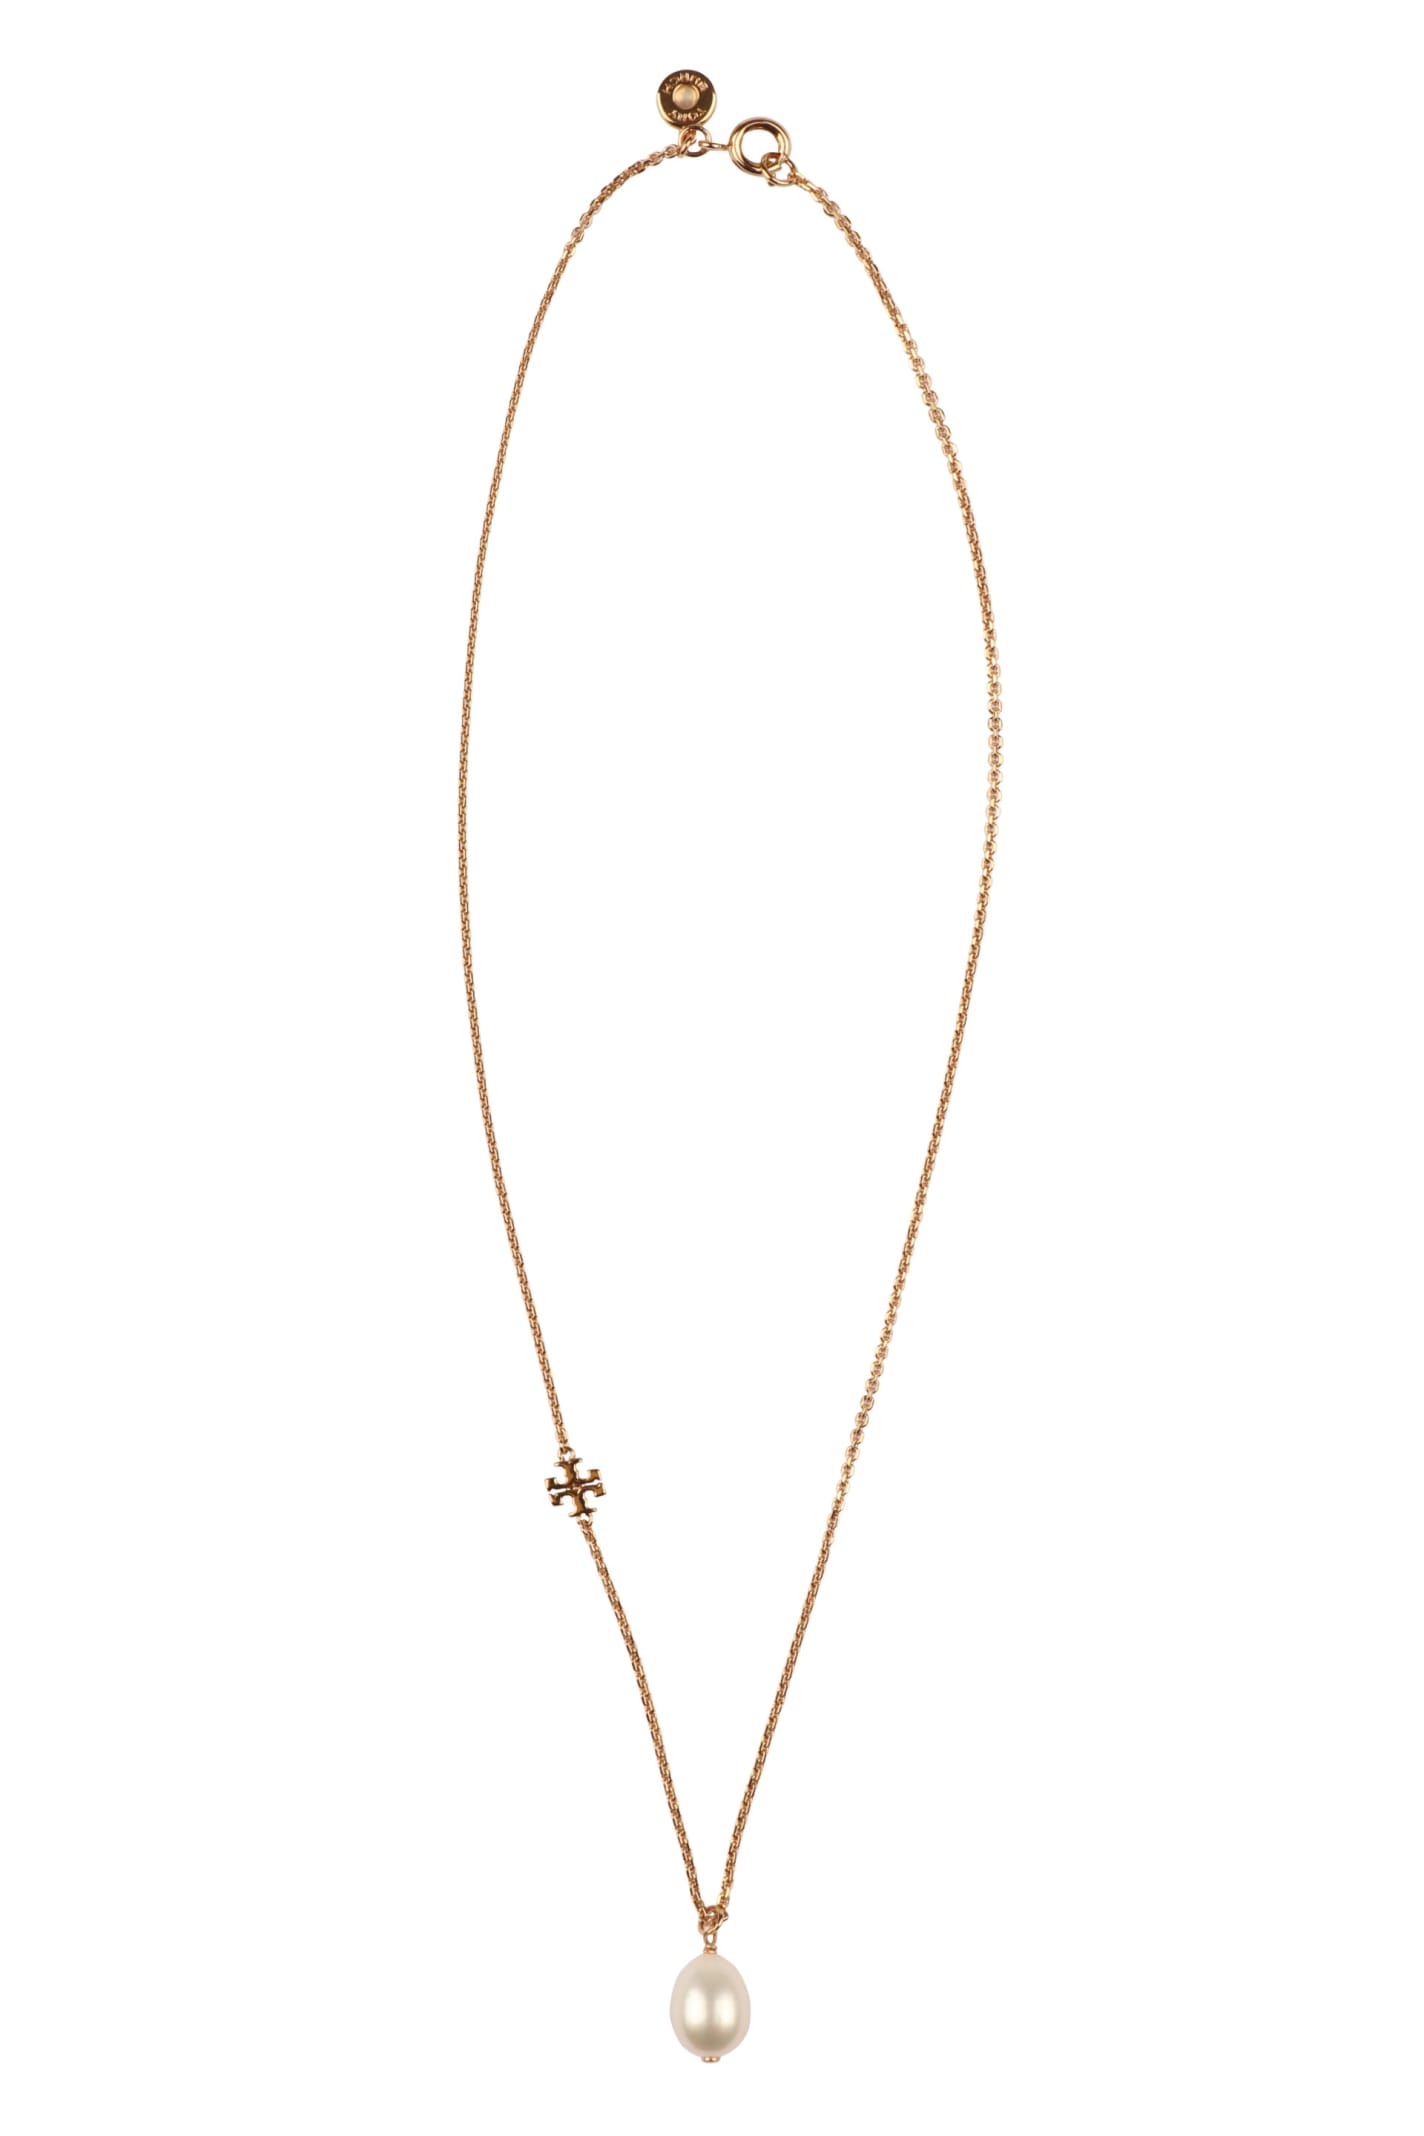 Tory Burch Pearl Pendant Short Necklace